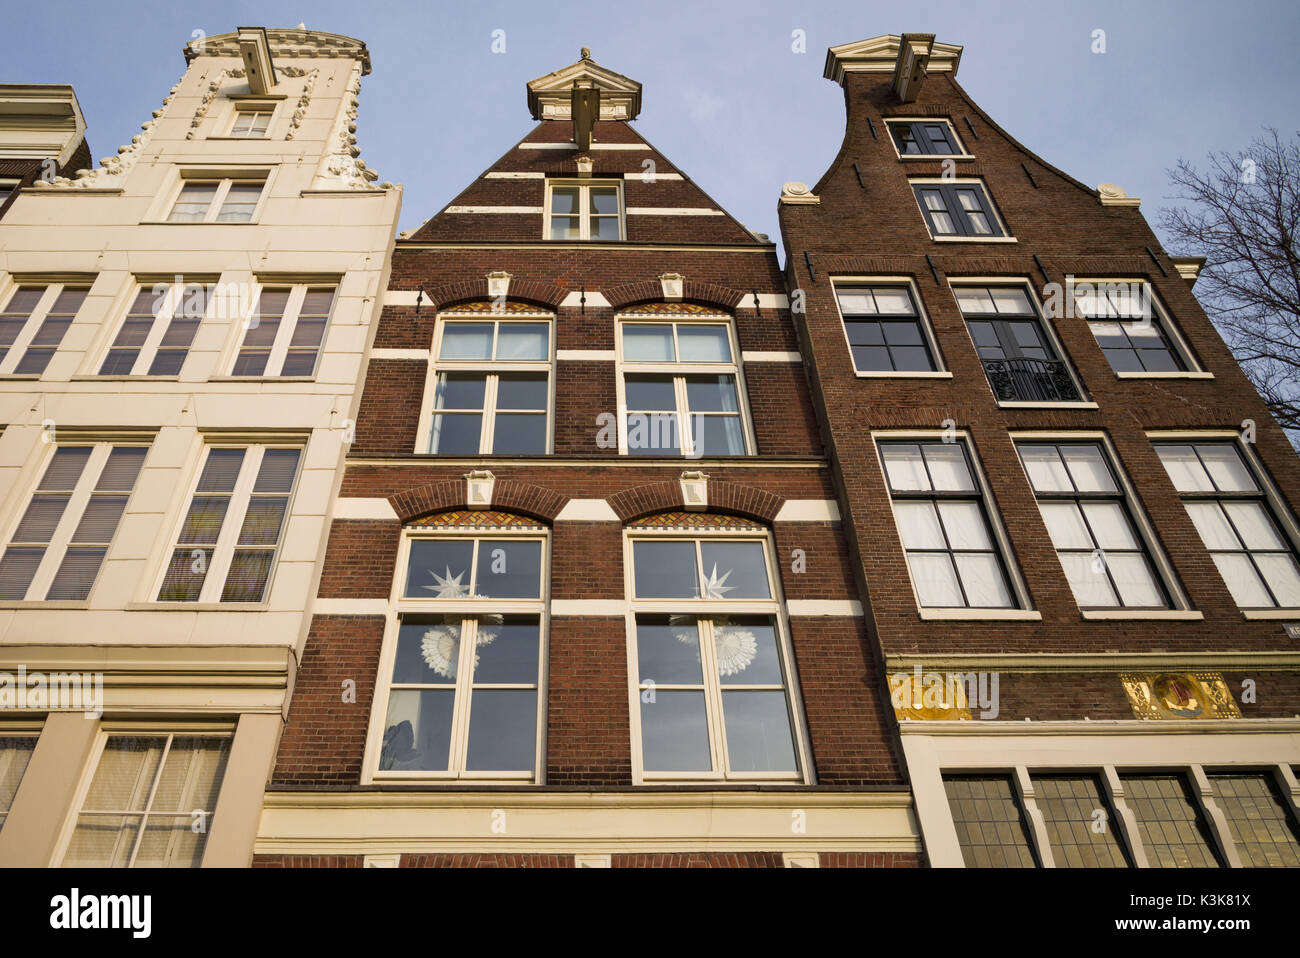 Netherlands, Amsterdam, Prinsengracht canal, building detail - Stock Image